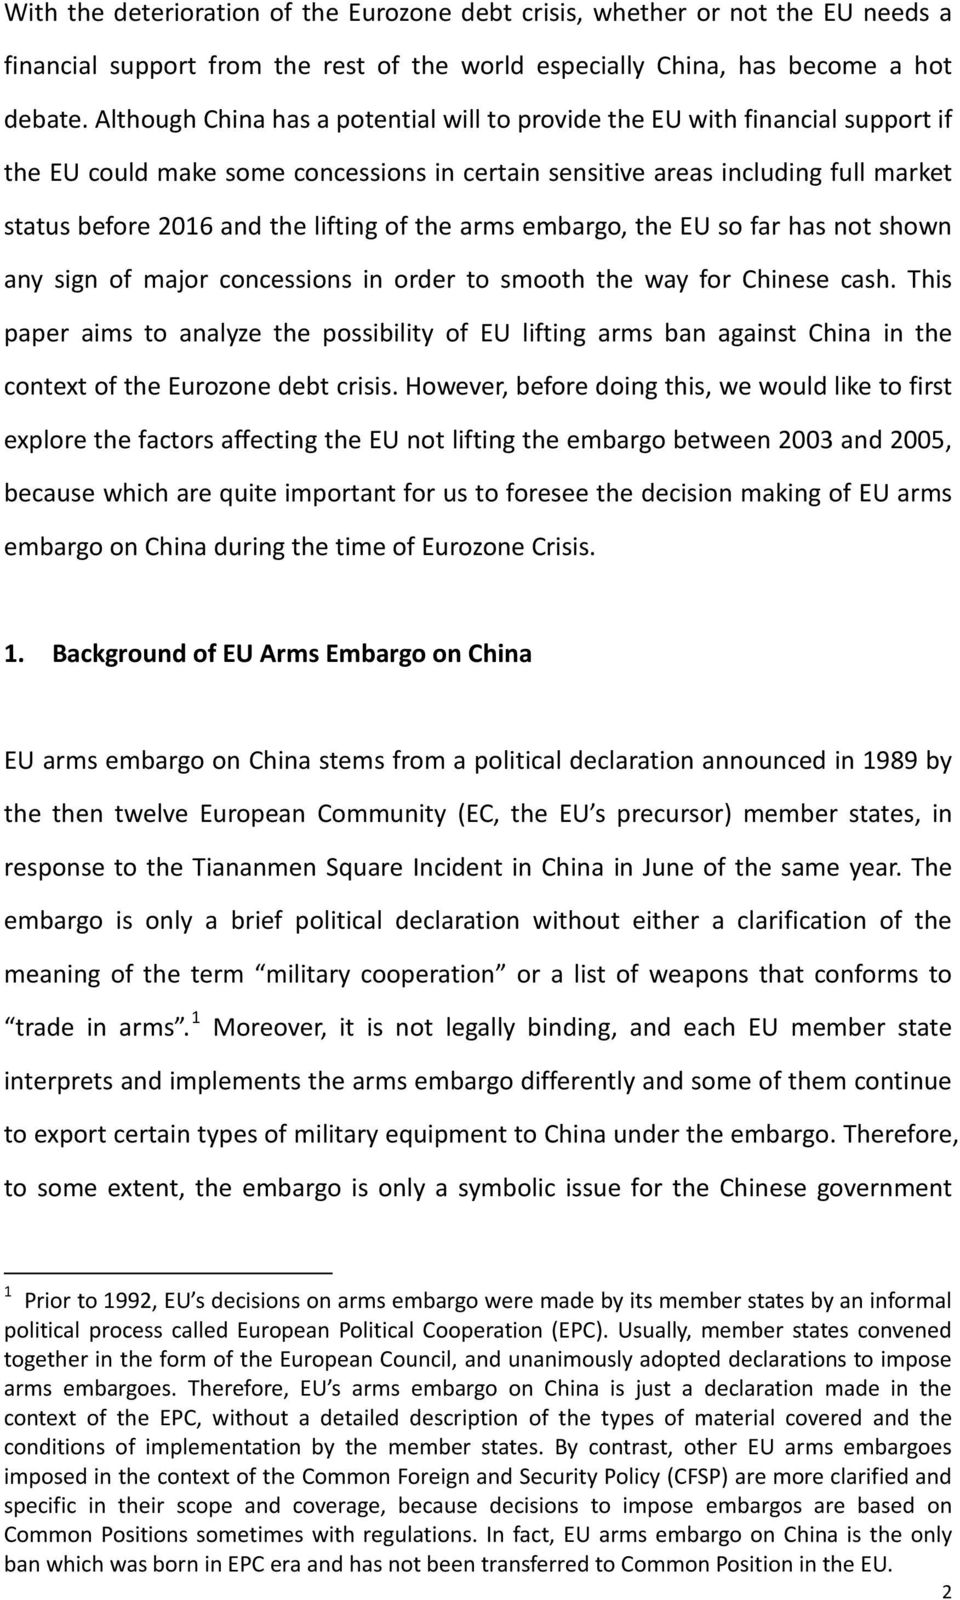 the arms embargo, the EU so far has not shown any sign of major concessions in order to smooth the way for Chinese cash.